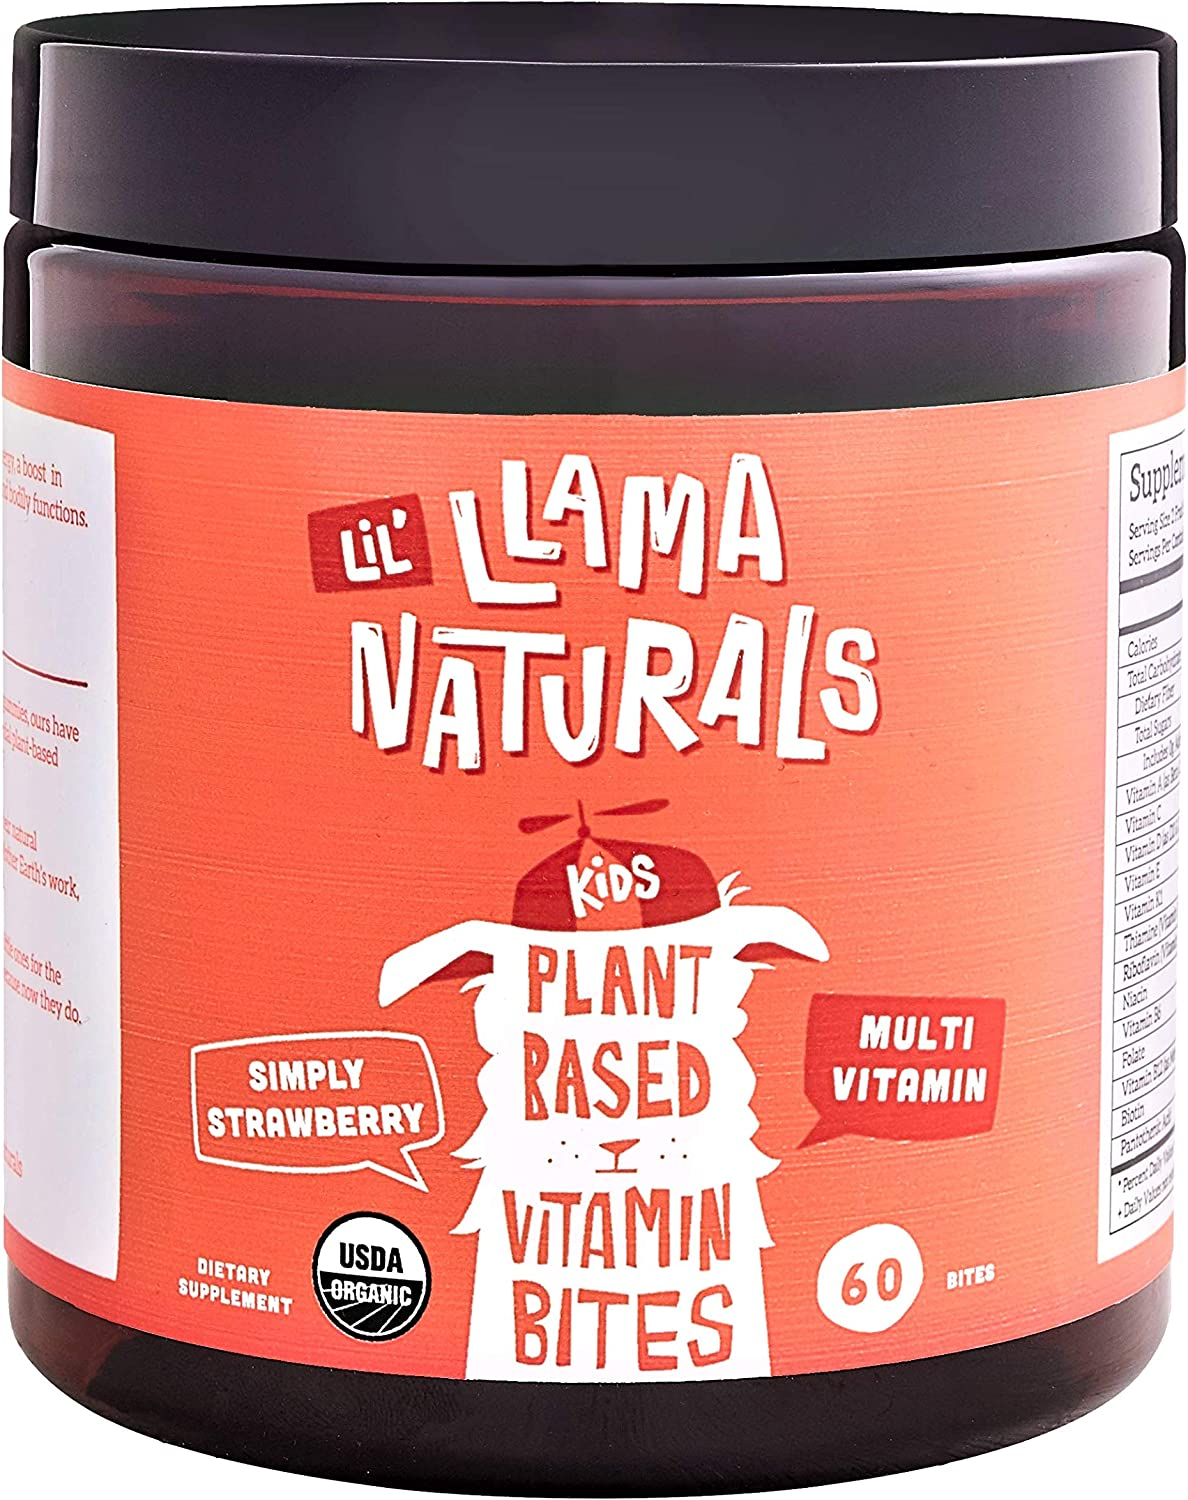 LLama Naturals Plant Based Vitamin Bites (Kids); Organic; No Added Sugar, Sweeteners or Synthetics; Vegan Multivitamin Gummies (D3, B12, Folate & More); 60 Real Fruit Bites (30 Days) (Strawberry)